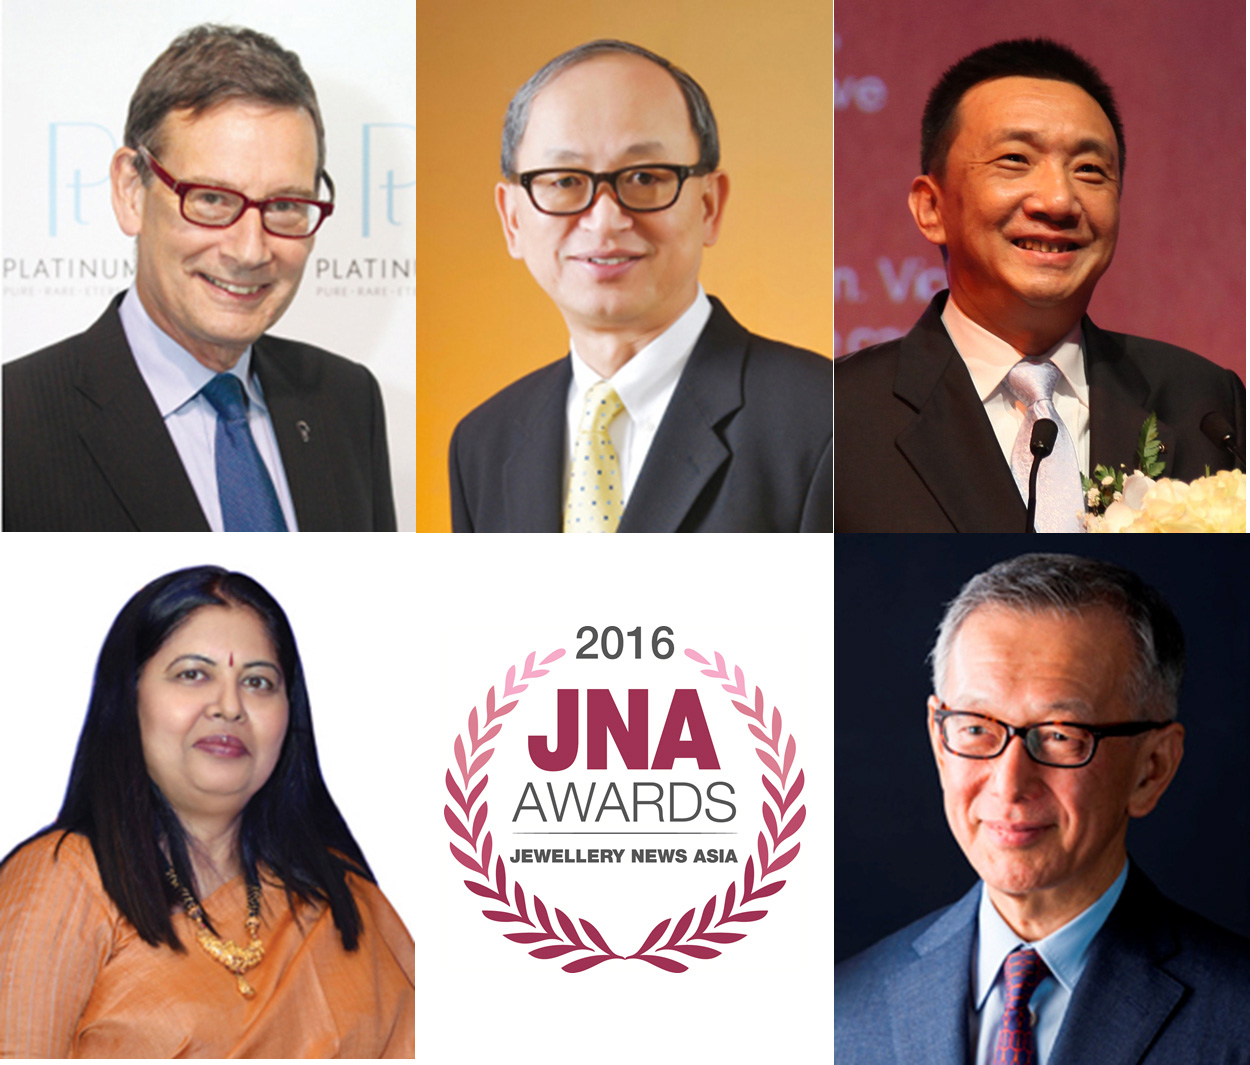 Chow Tai Fook, Gemfields and Rio Tinto Diamonds support JNA Awards 2016